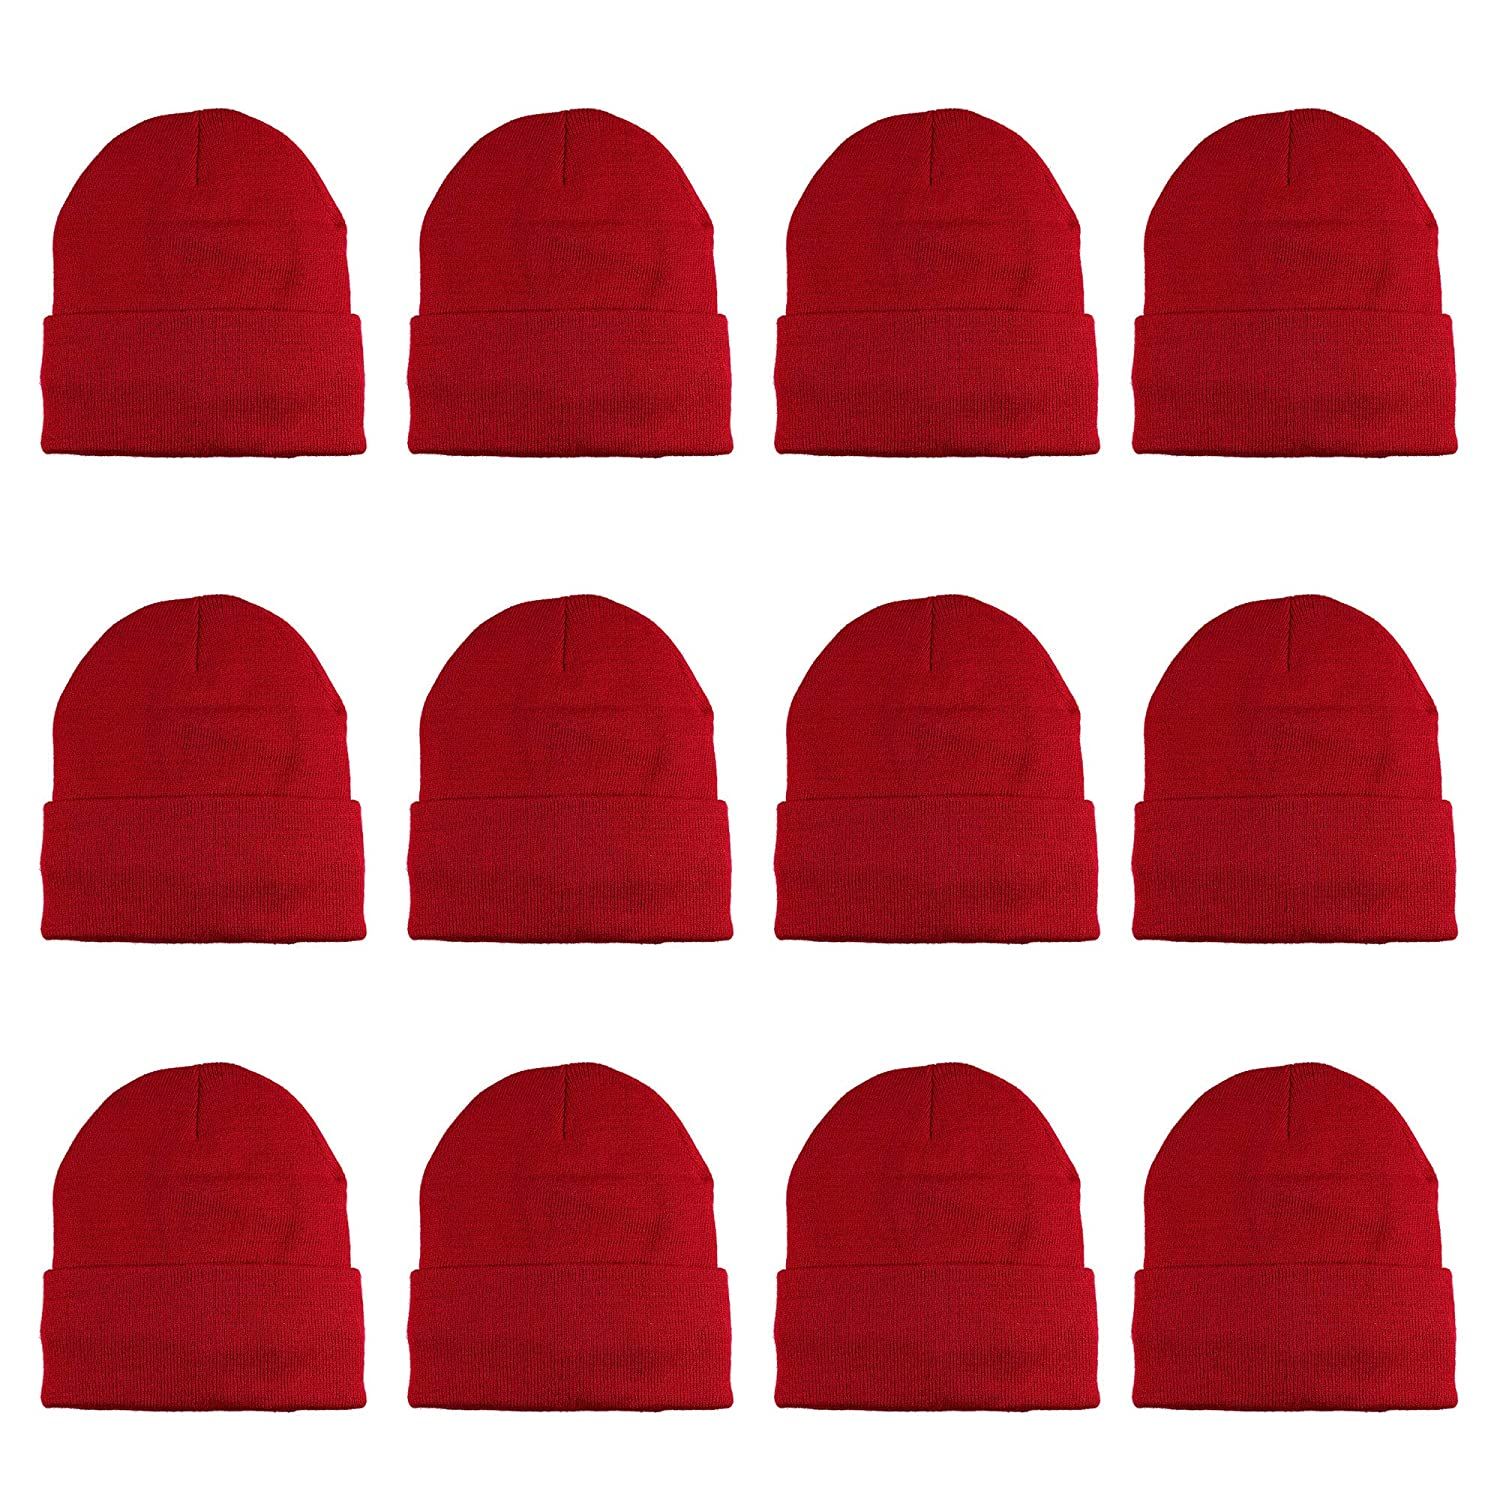 Gelante 3M Thinsulate Women Men Knitted Thermal Winter Cap Casual Beanies- Wholesale Lot 12 Packs-Black at Amazon Men s Clothing store  a6a58e56c0fa